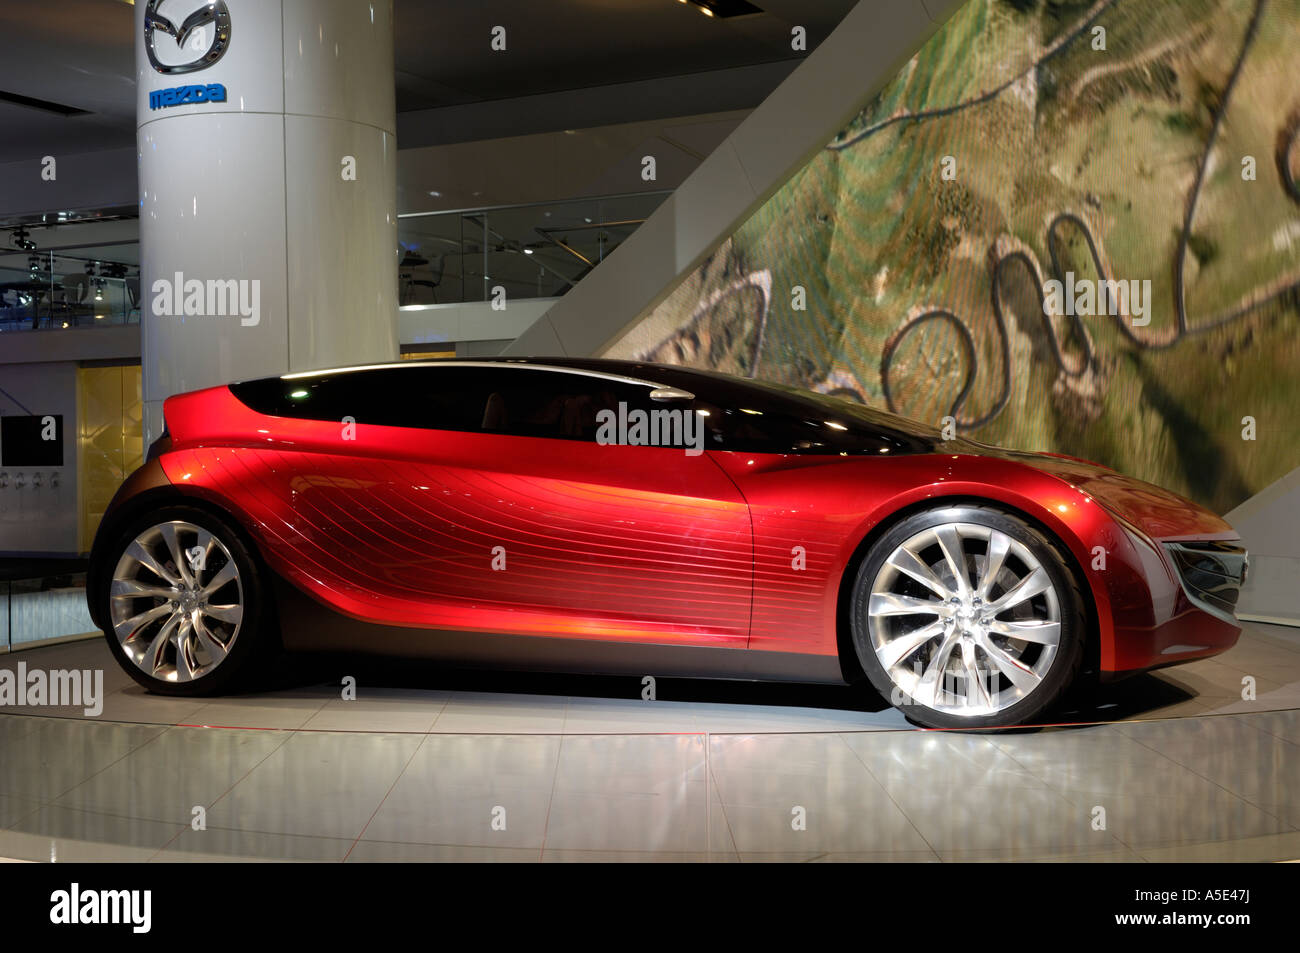 The Mazda Ryuga concept car at the North American International Auto ...